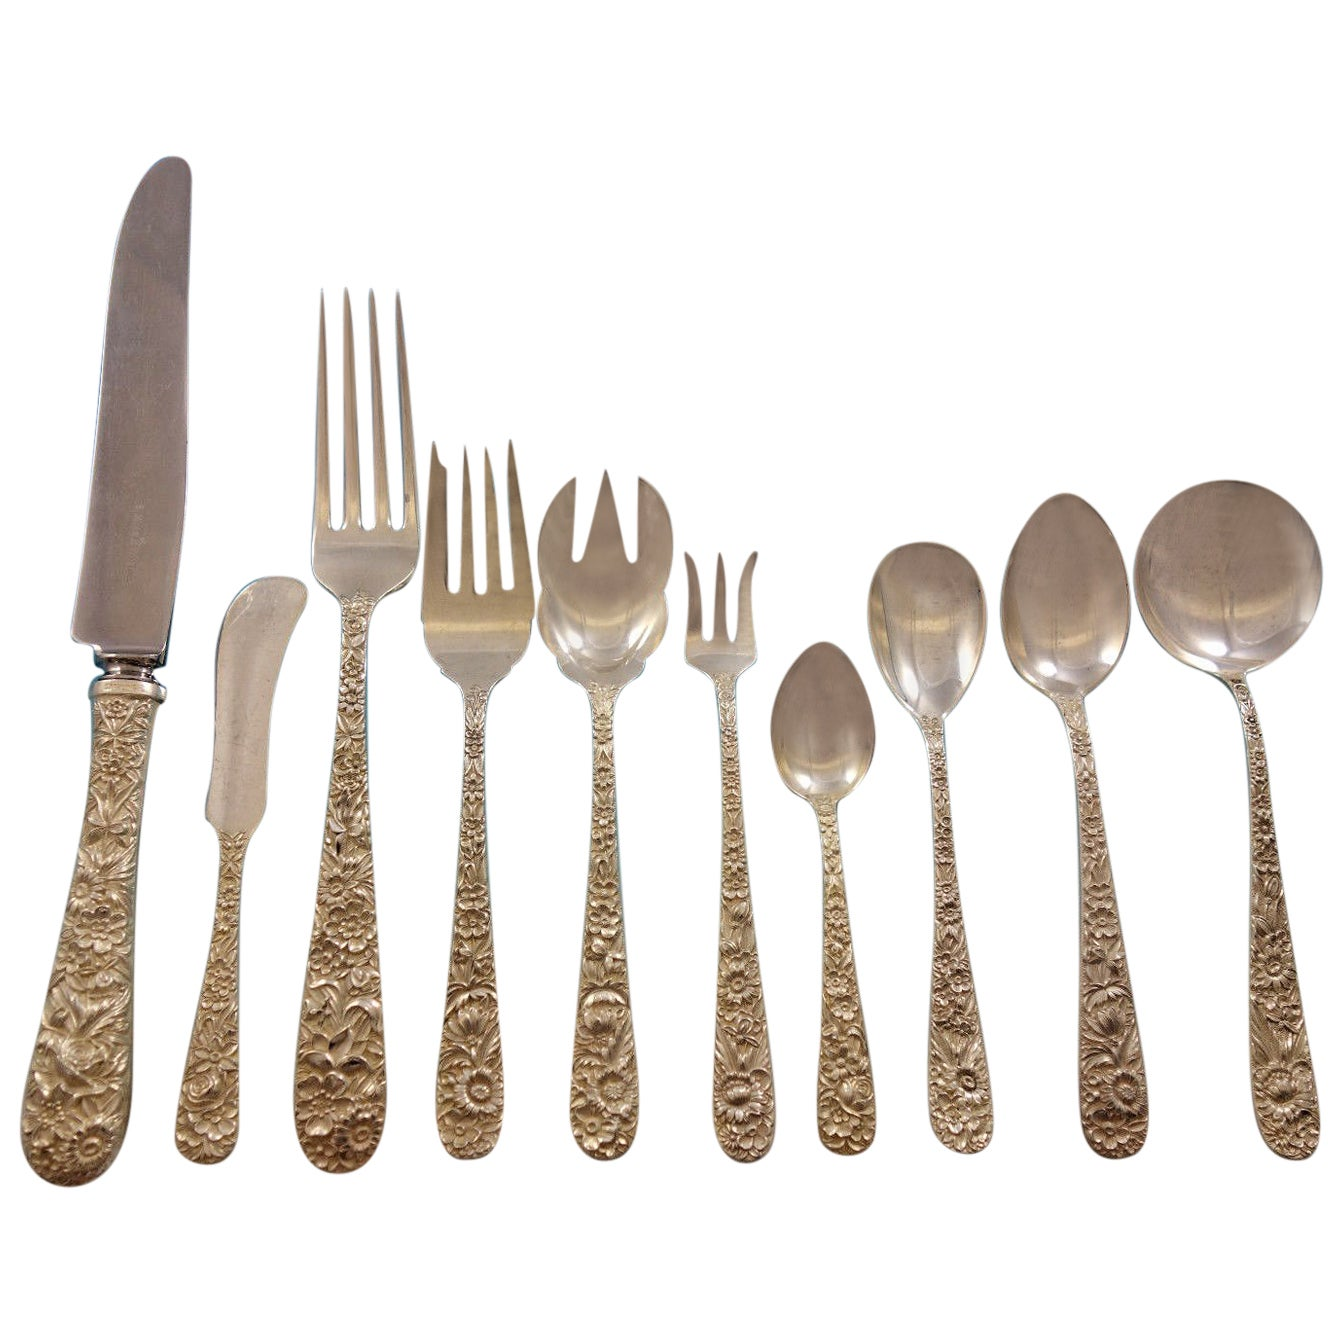 Repousse by Kirk Sterling Silver Flatware Set for 12 Service 134 Pieces Dinner